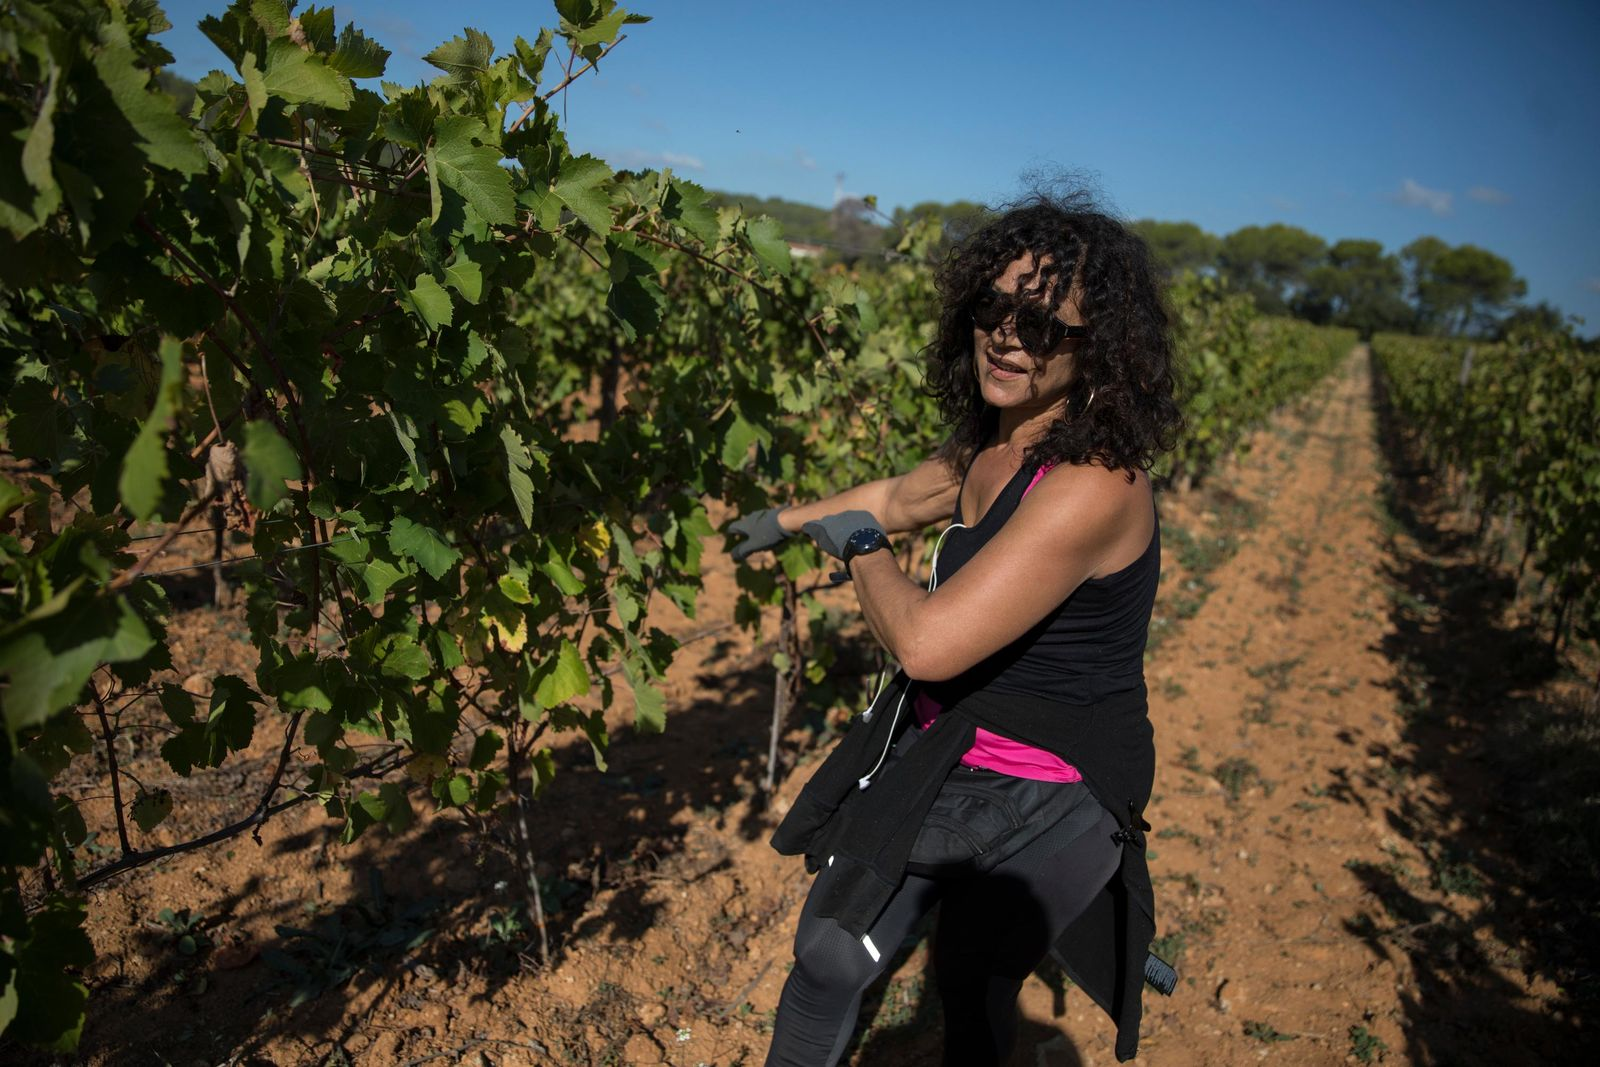 A worker tends to a vineyard after a recent harvest in the southern France region of Provence, Friday Oct. 11, 2019. (AP Photo/Daniel Cole)